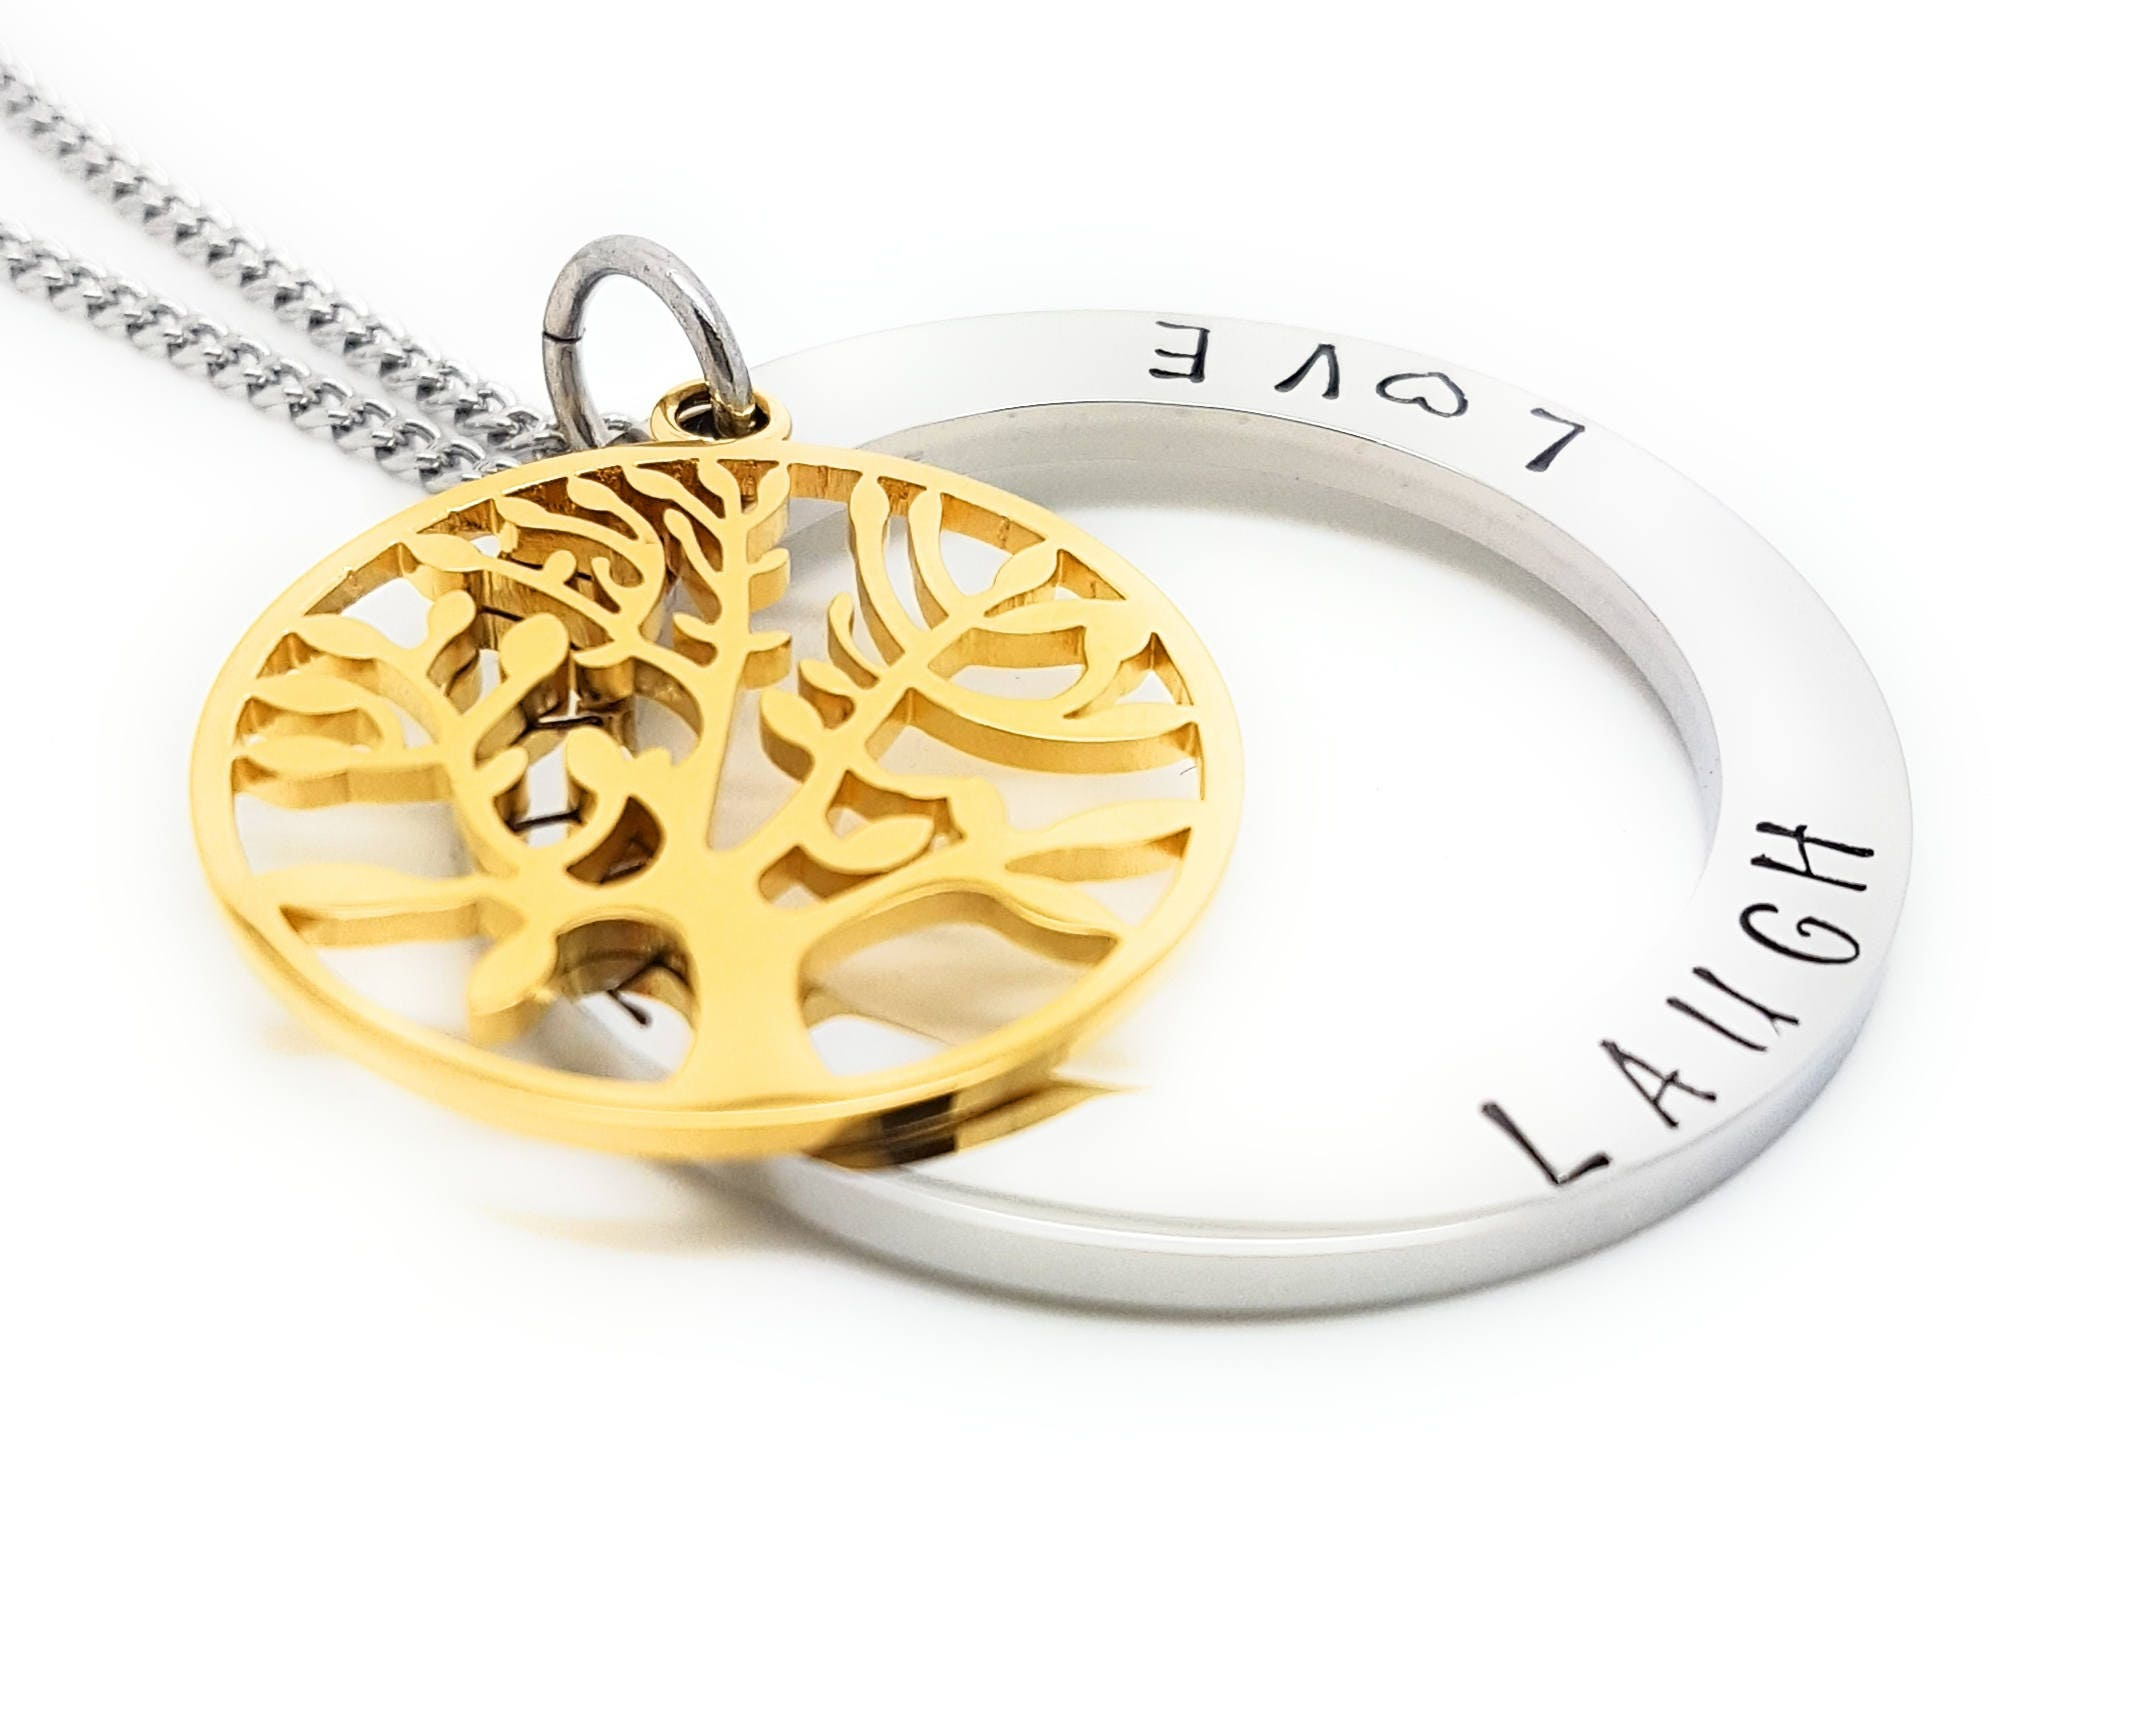 Coorabell crafts live laugh love pendant with silver circle and coorabell crafts live laugh love pendant with silver circle and gold tree of life charm includes stylish gift box buycottarizona